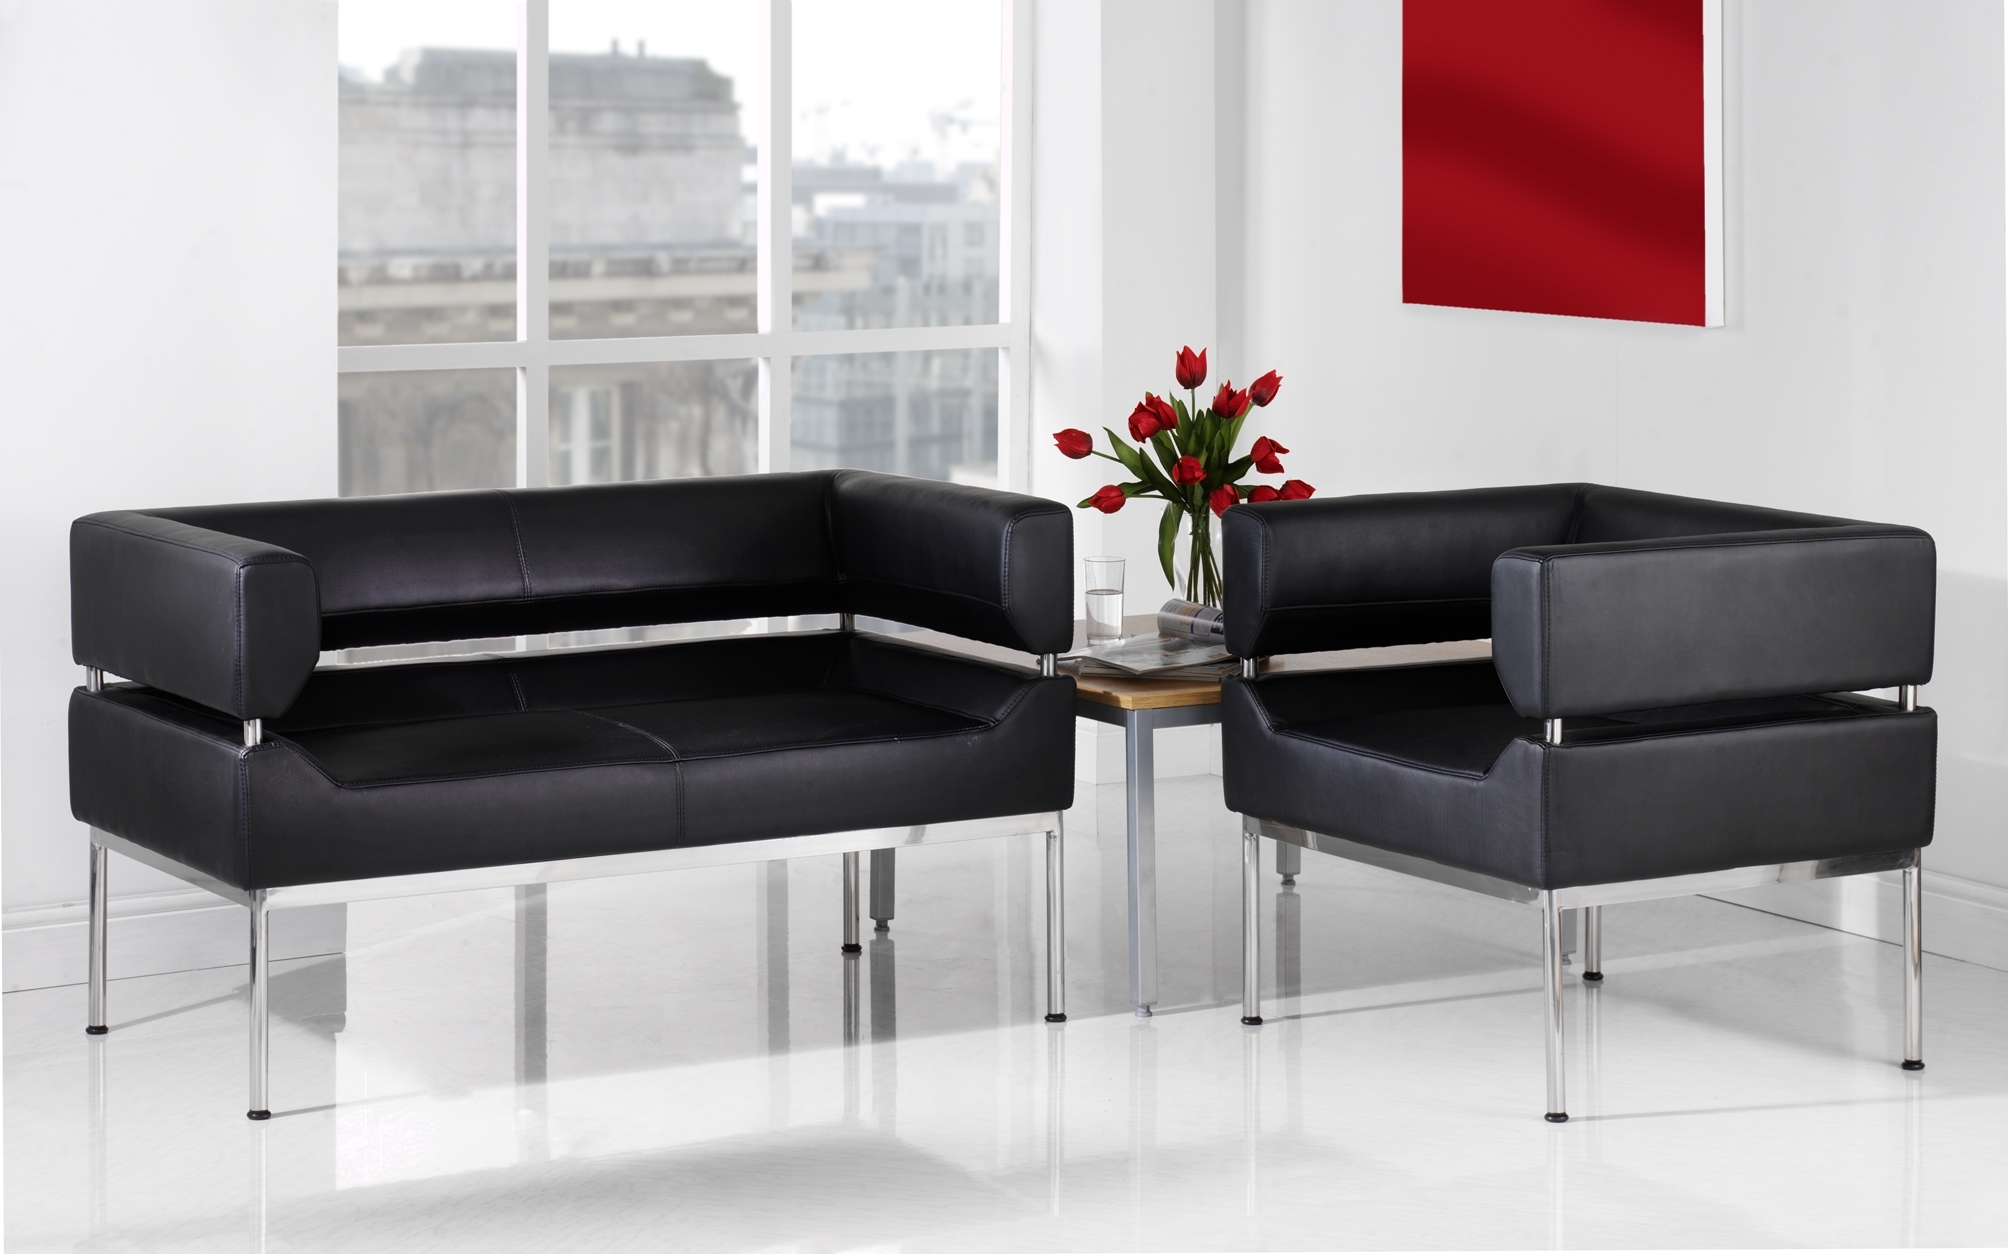 Beautiful Sofas And Chairs 97 On Office Sofa Ideas With Sofas And Pertaining To Recent Office Sofas (View 2 of 15)